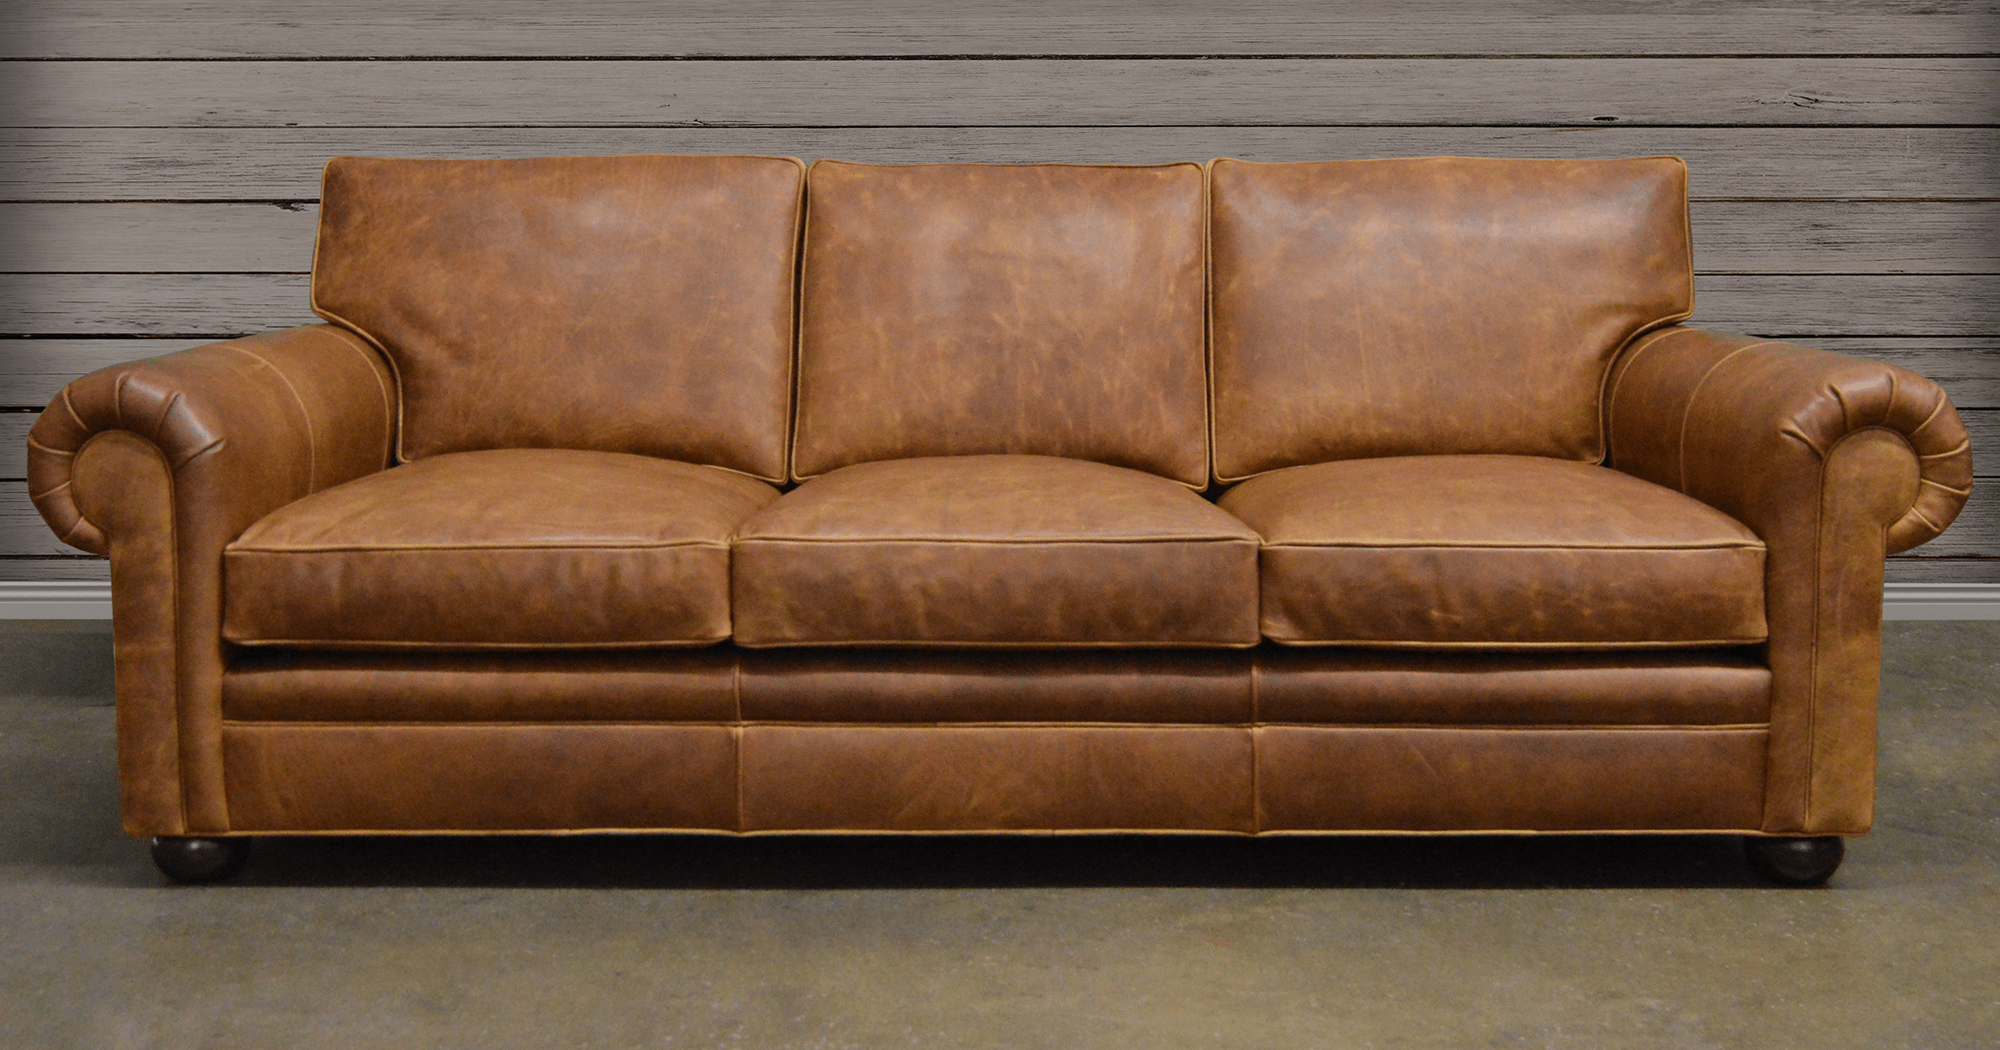 Genuine Leather Sectional Canada American Made Leather Furniture Leather Sofas Leather Chairs